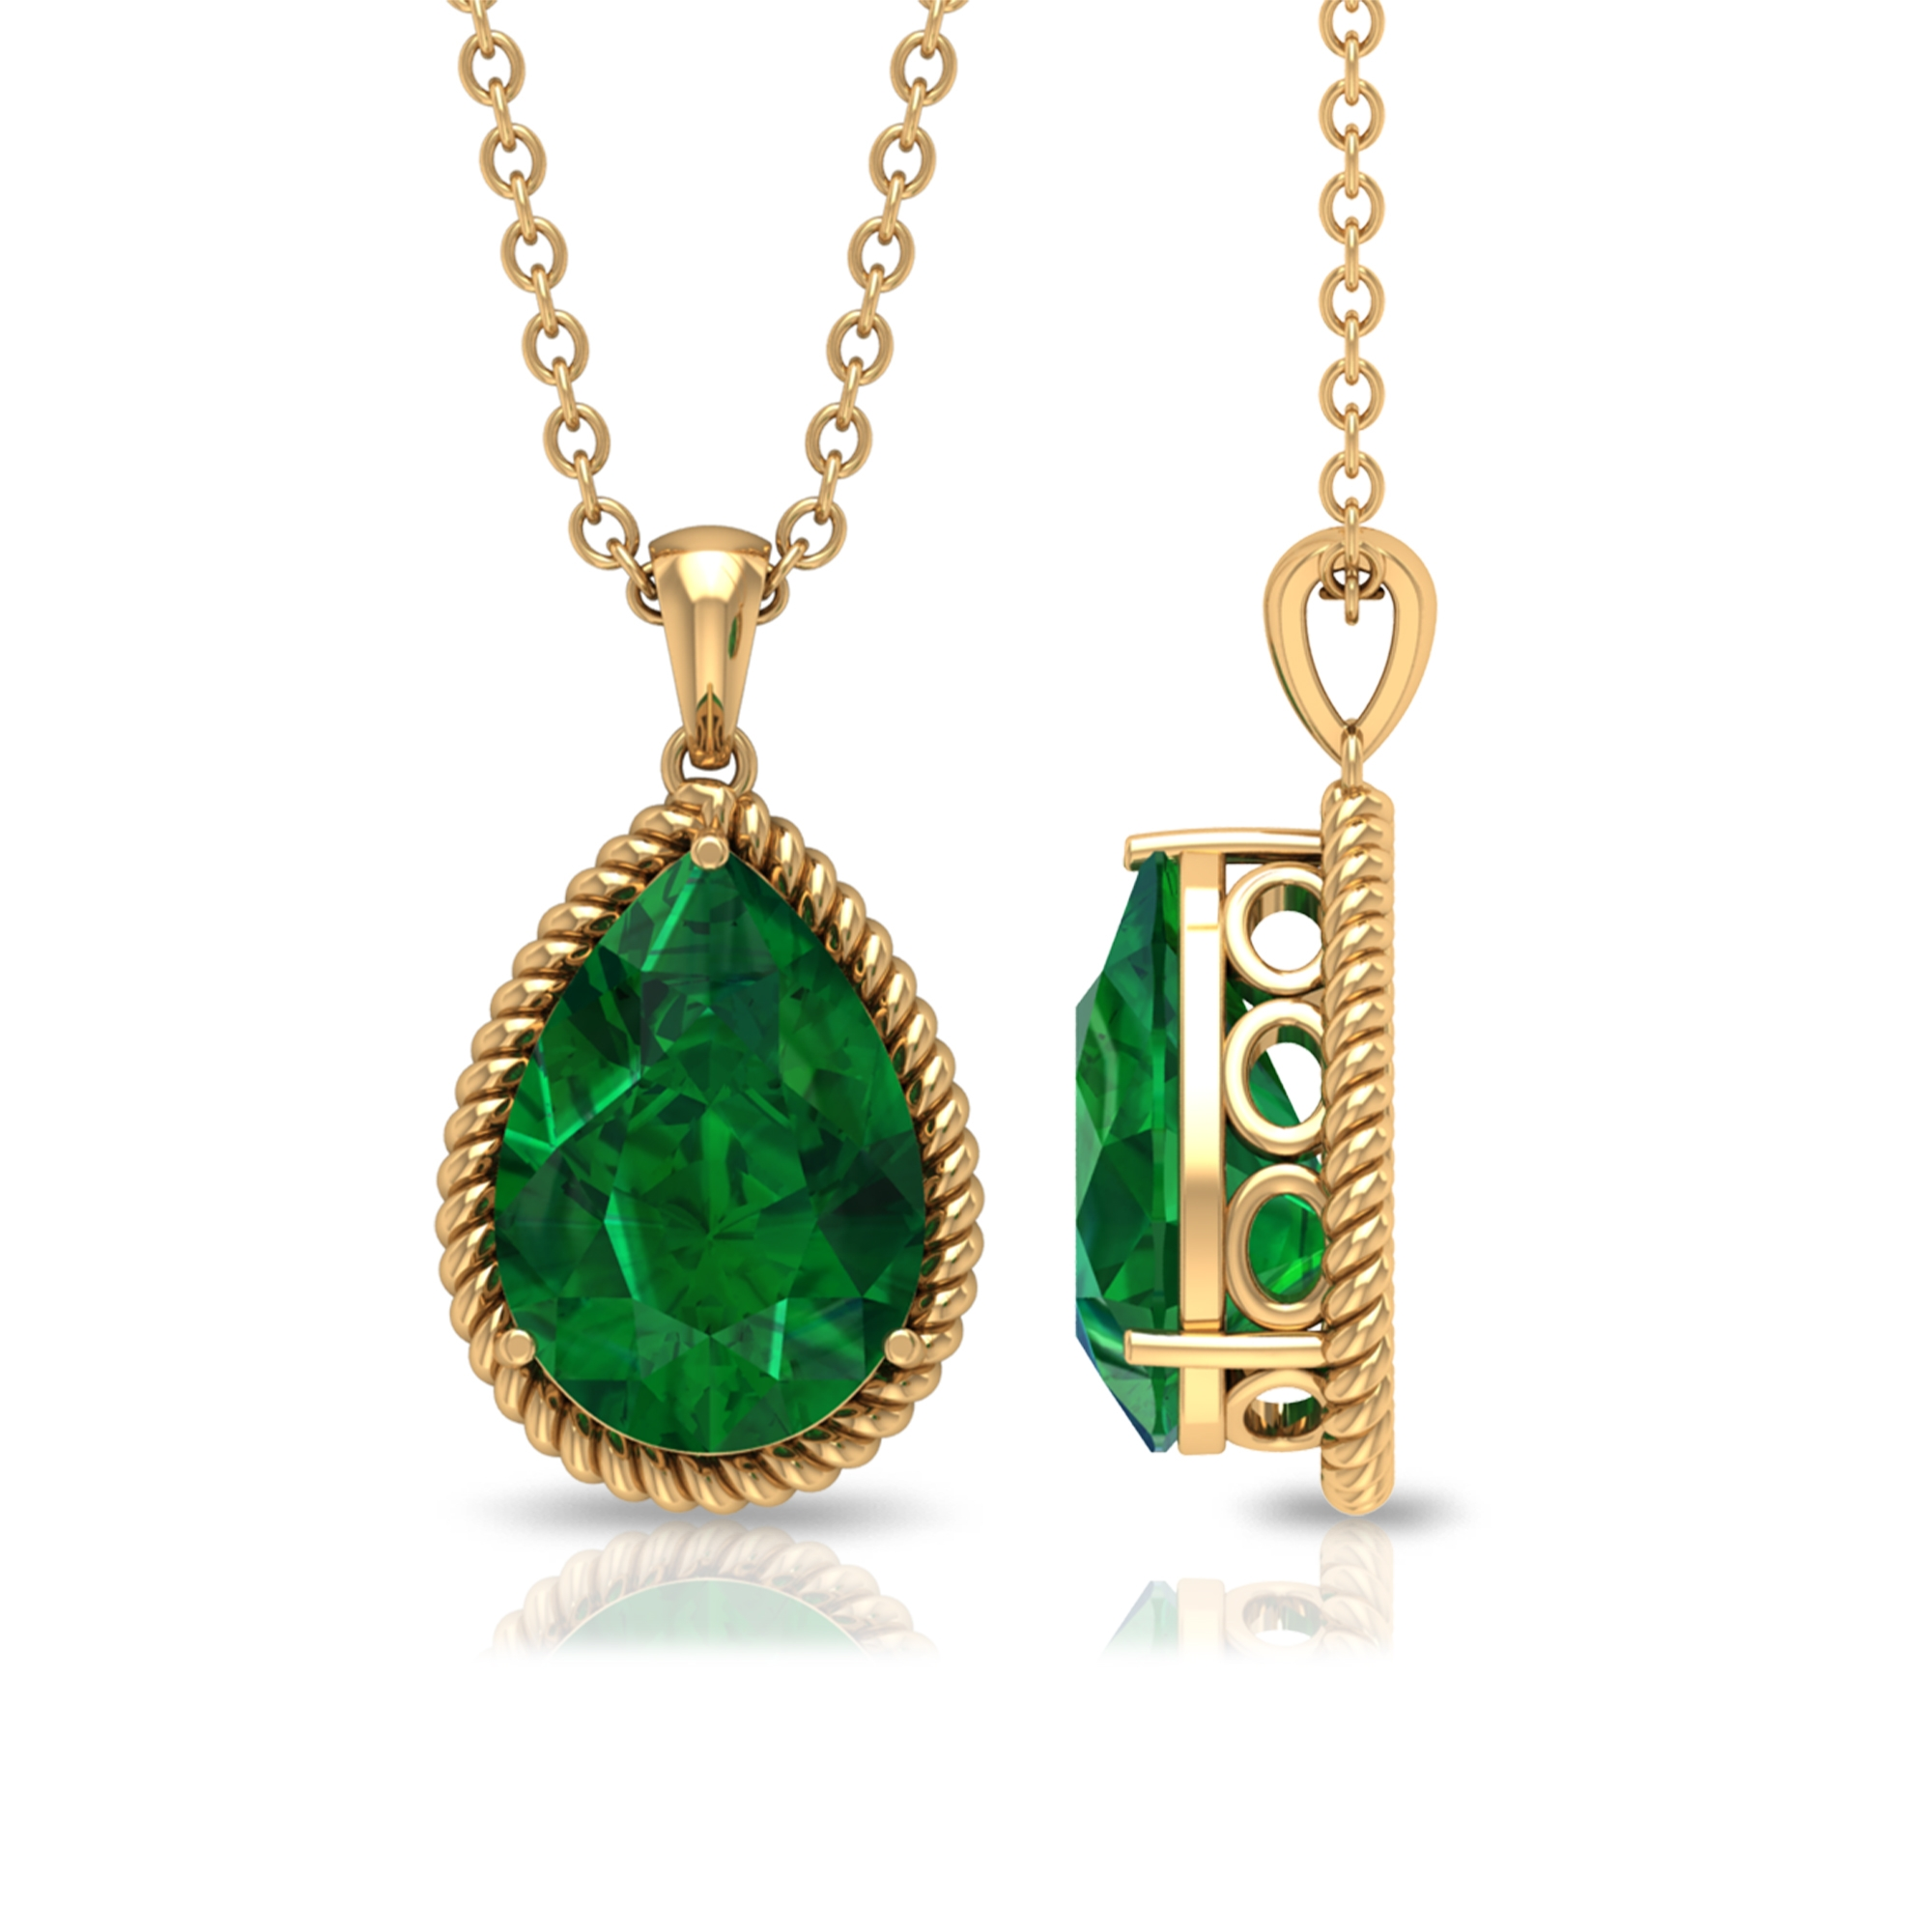 7X10 MM Pear Cut Emerald Solitaire Antique Pendant in 3 Prong Setting with Rope Frame